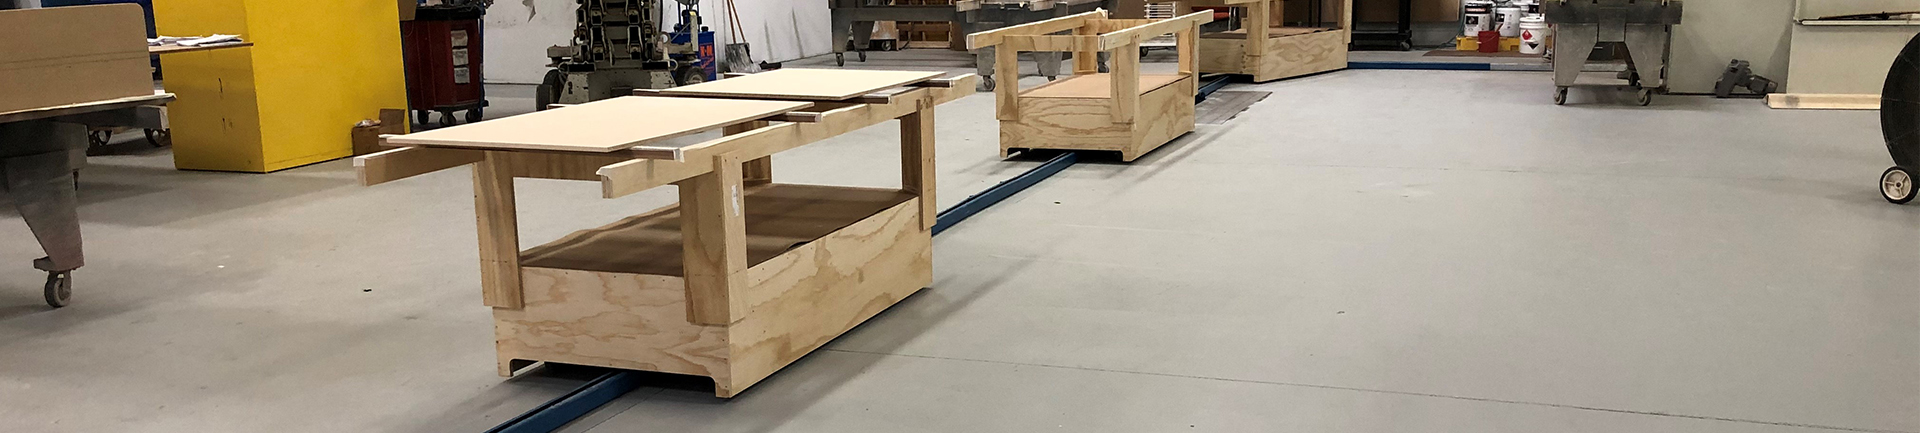 Woodworking paint and finish towline conveyor